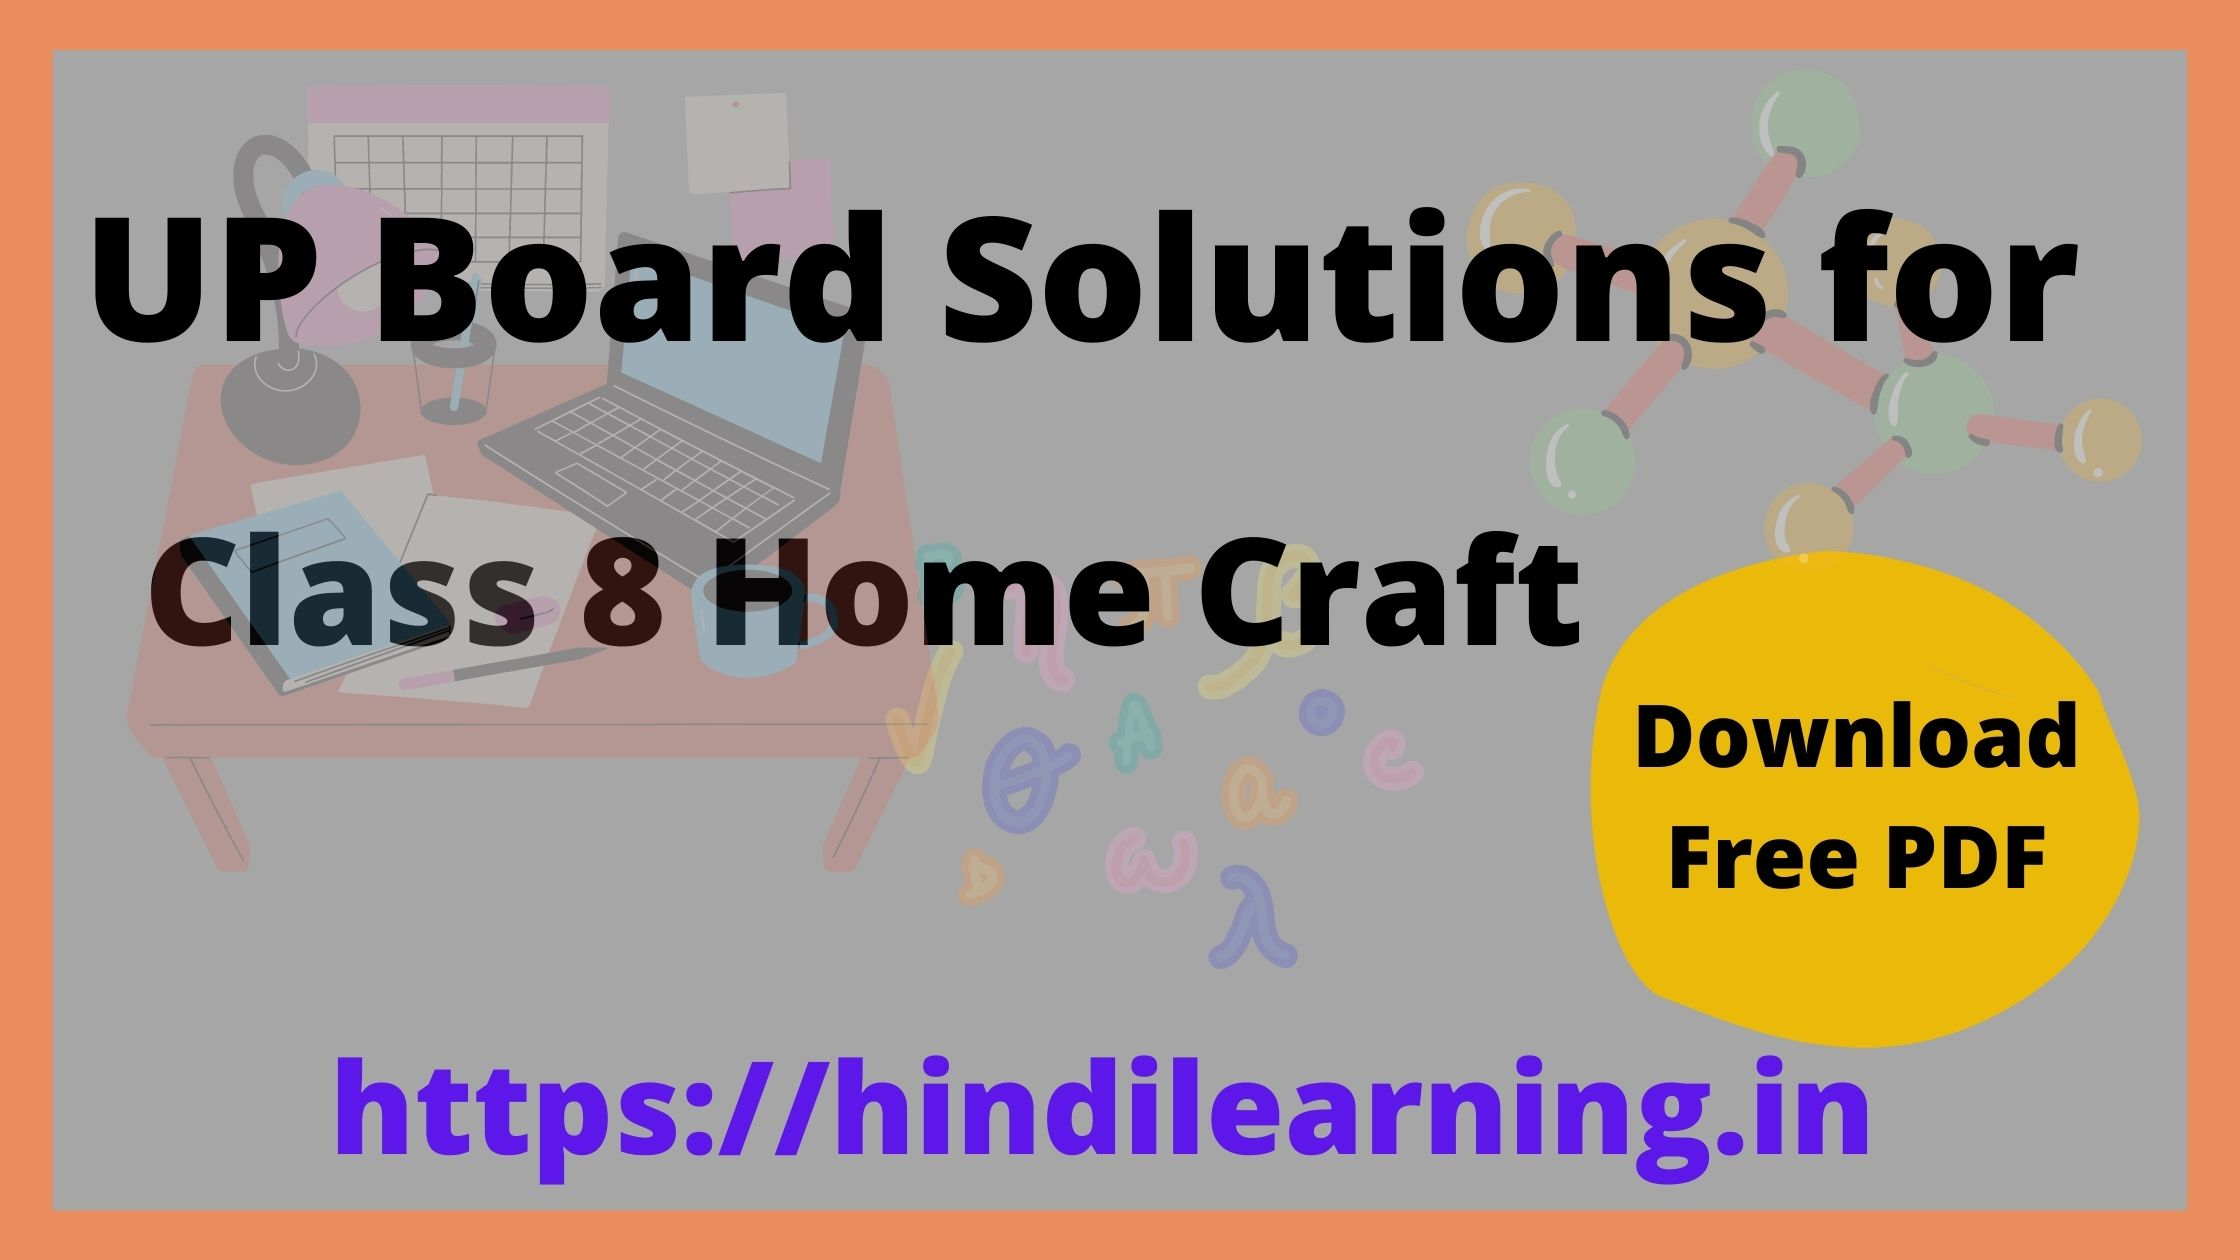 UP Board Solutions for Class 8 Home Craft (गृह शिल्प)